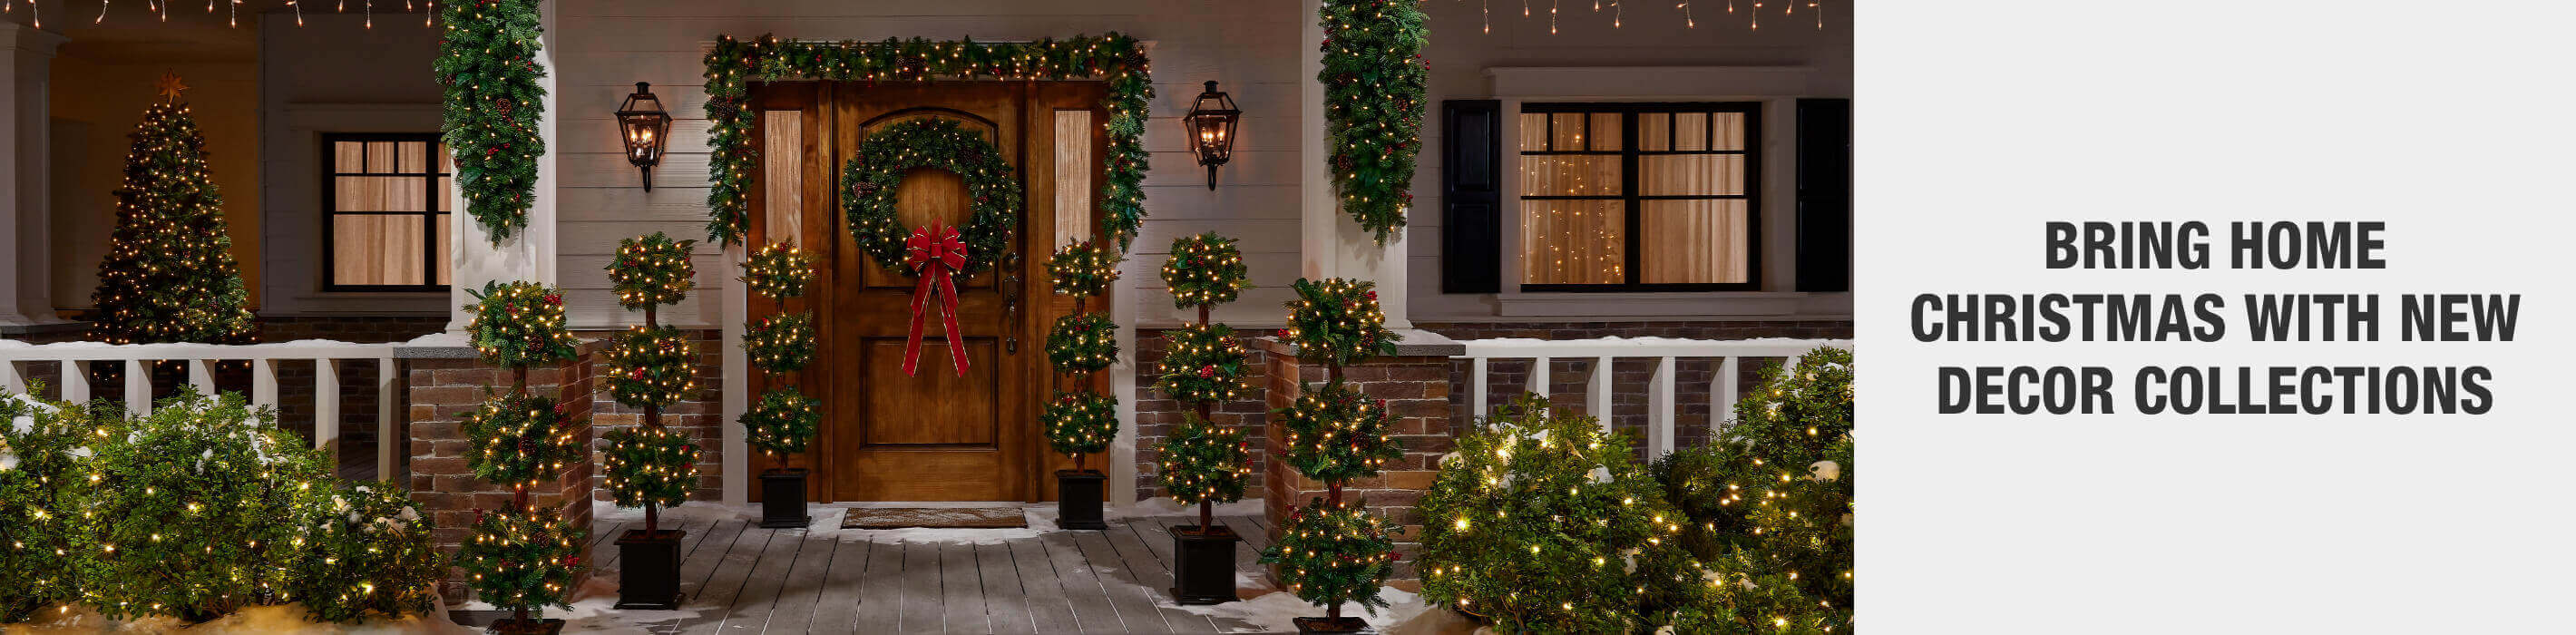 BRING HOME CHRISTMAS WITH NEW DECOR COLLECTIONS